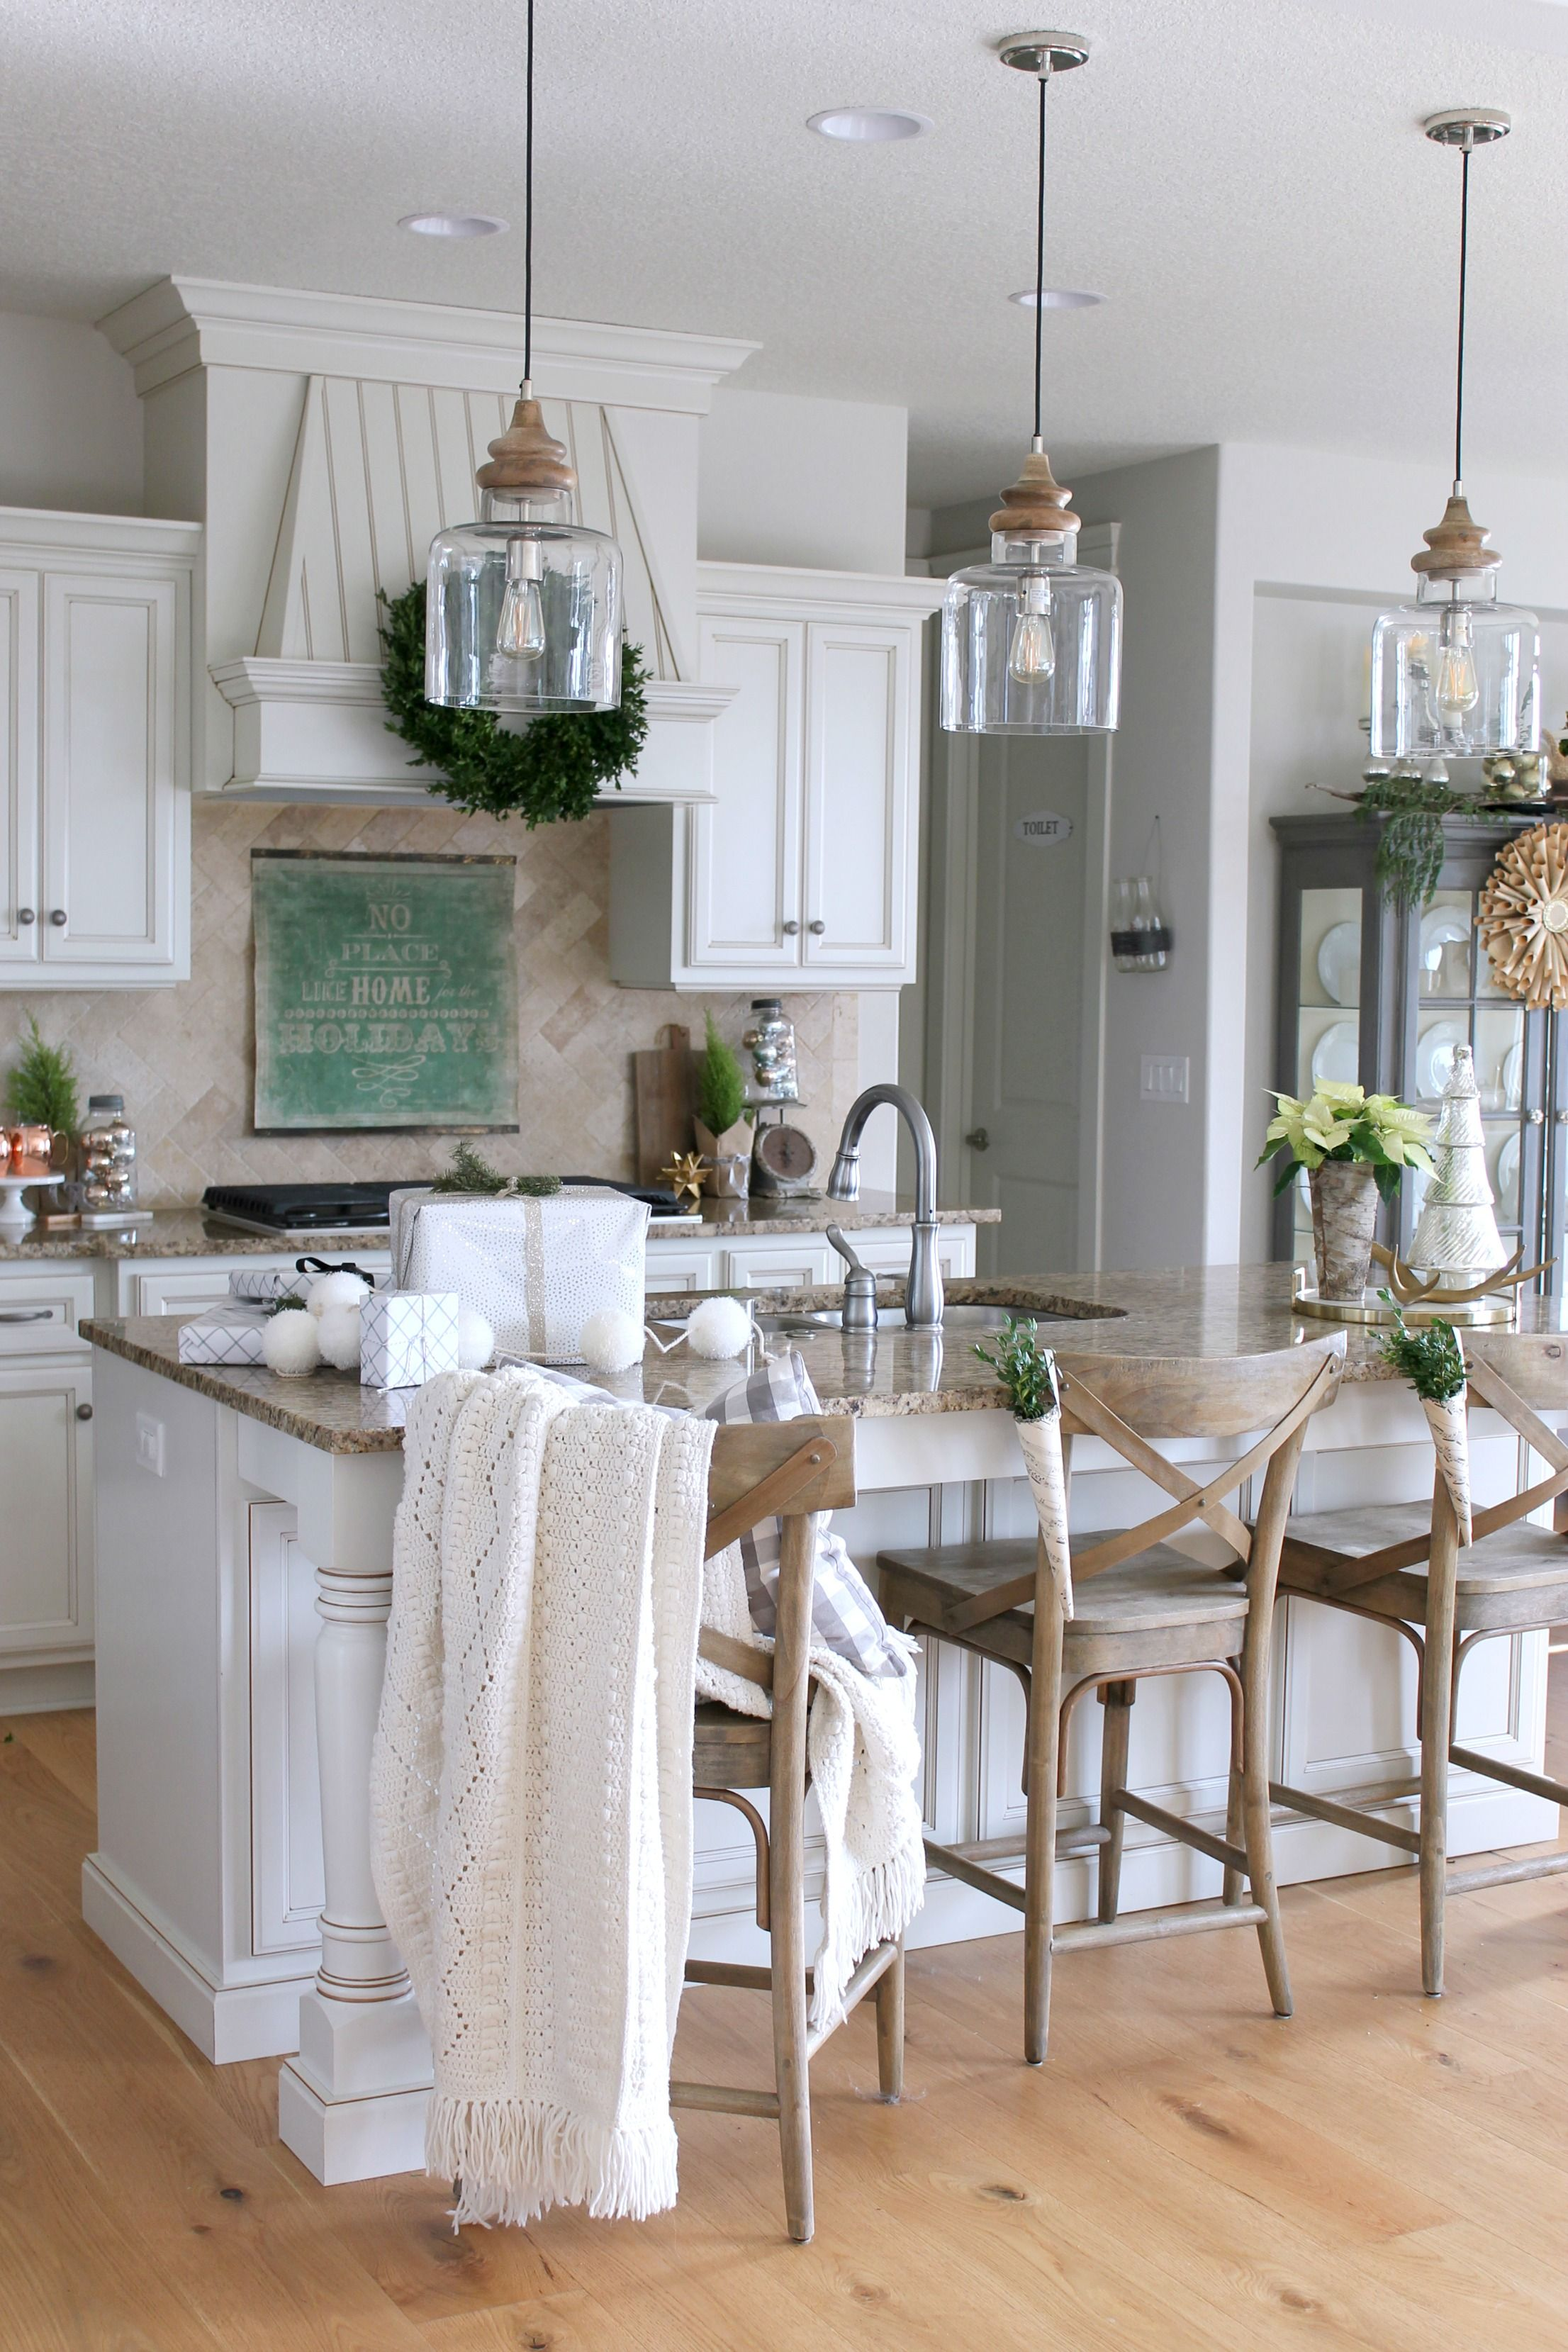 New Farmhouse Style Island Pendant Lights Kitchens Pinterest - Pendant lighting in kitchen photos